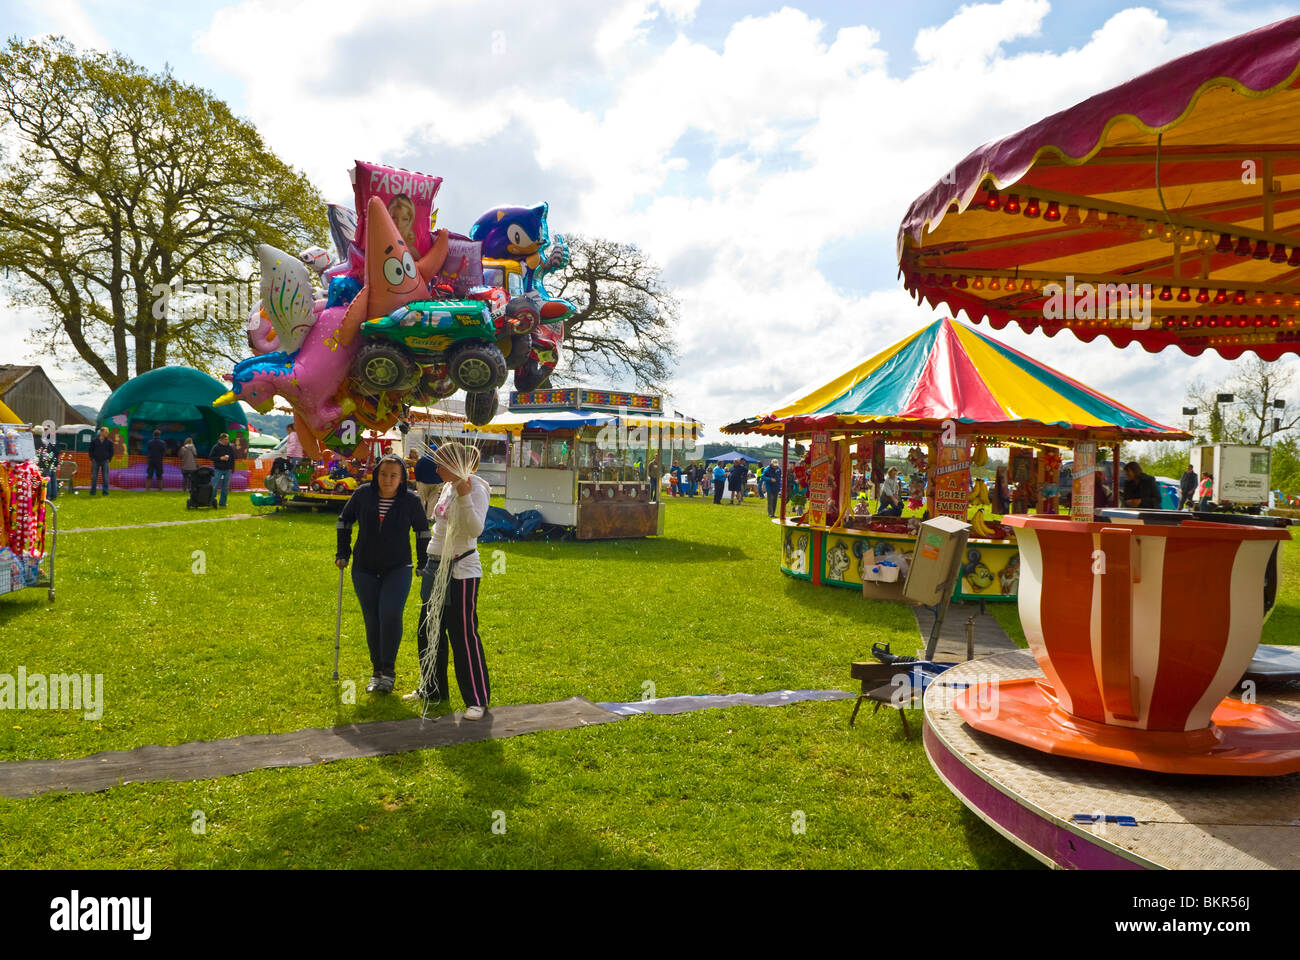 Country fair - Stock Image